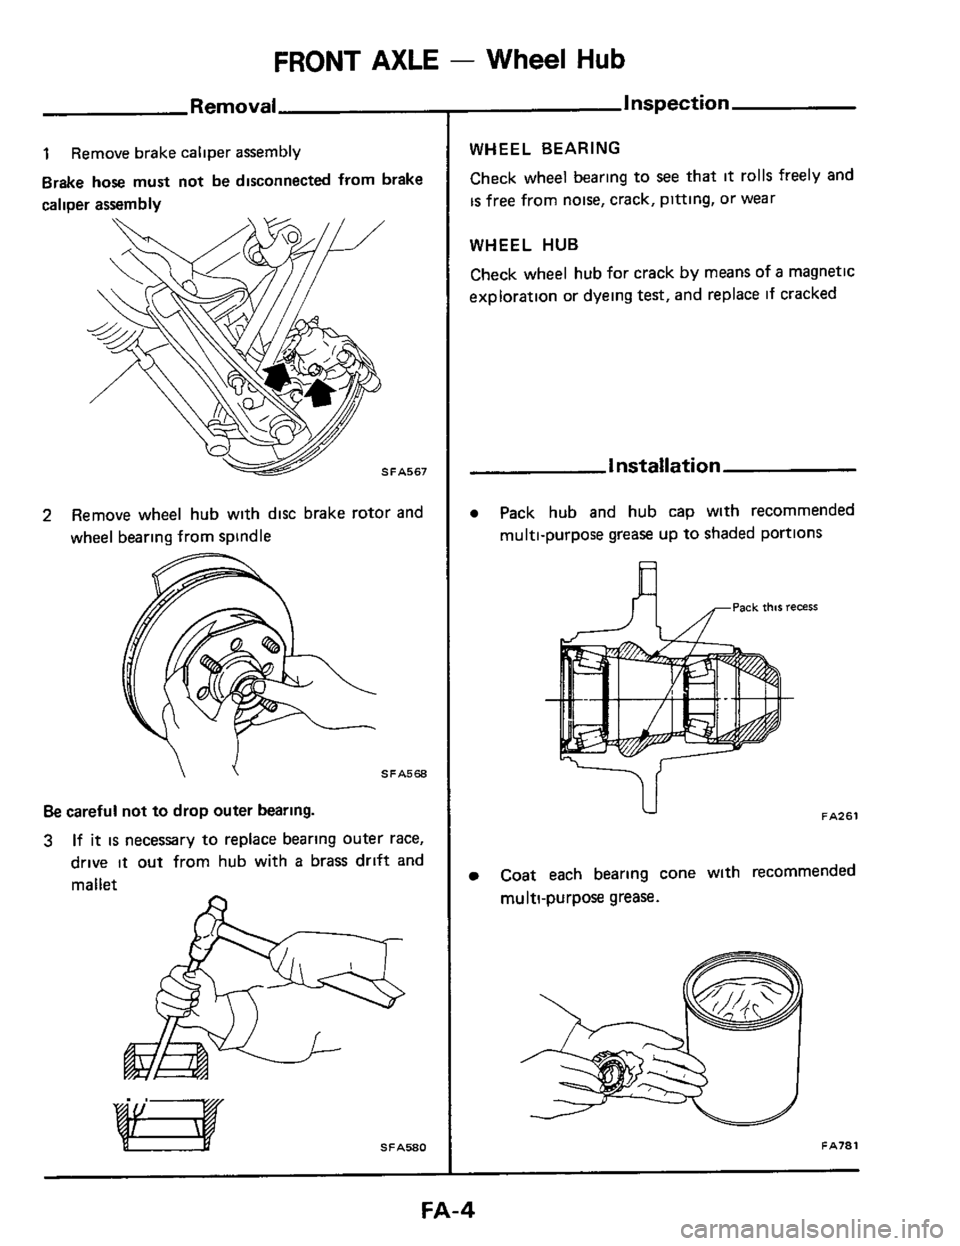 NISSAN 300ZX 1984 Z31 Front Suspension Workshop Manual, Page 4